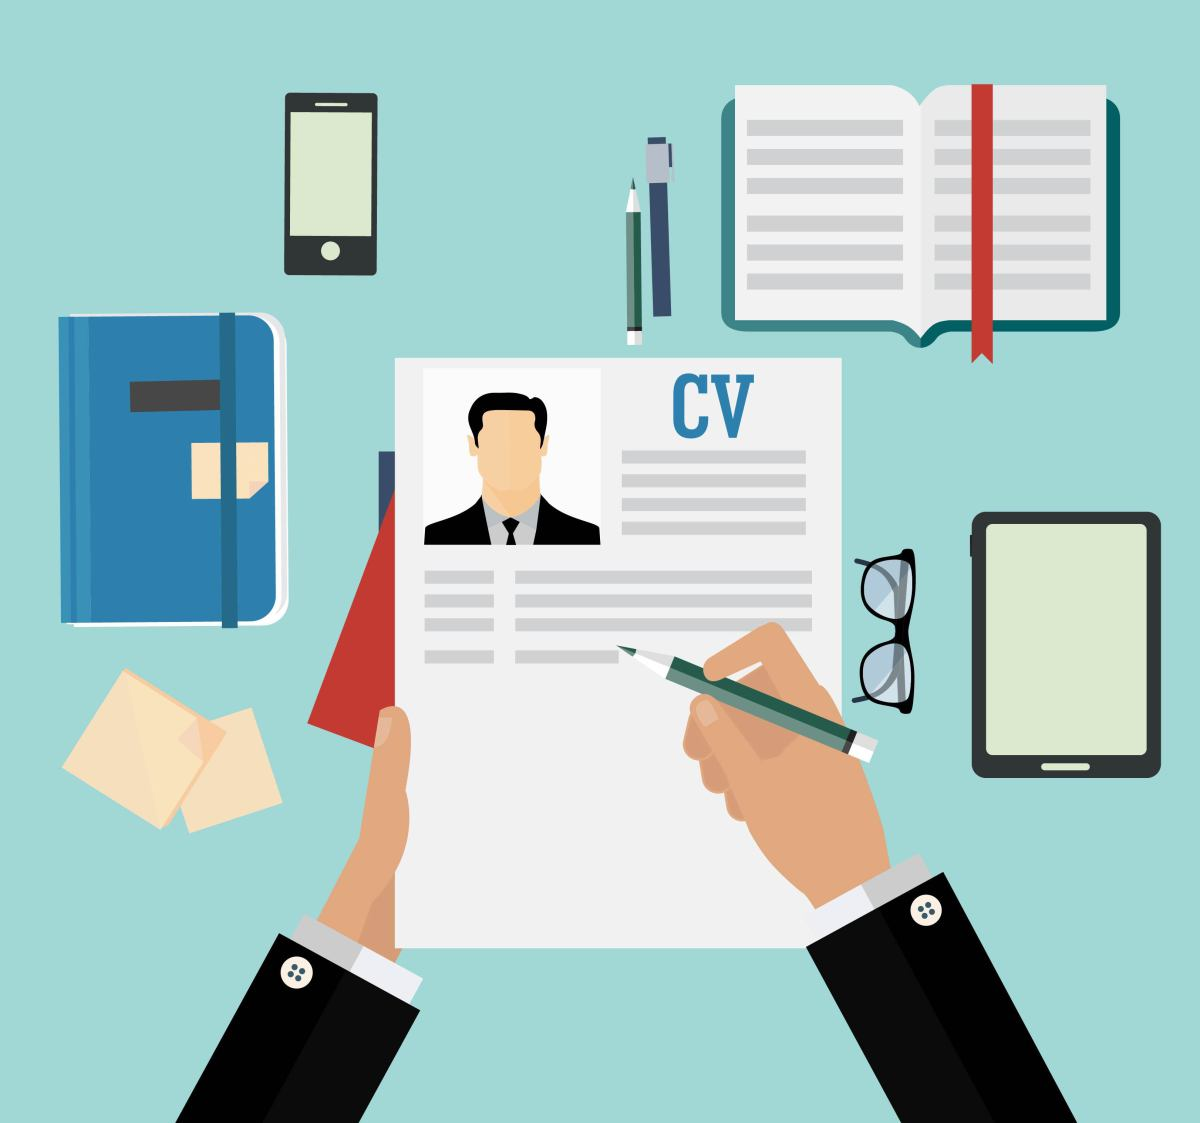 is your cv application ready?, CV, recruitment, dental jobs, dental, jobs, career, CV, job application